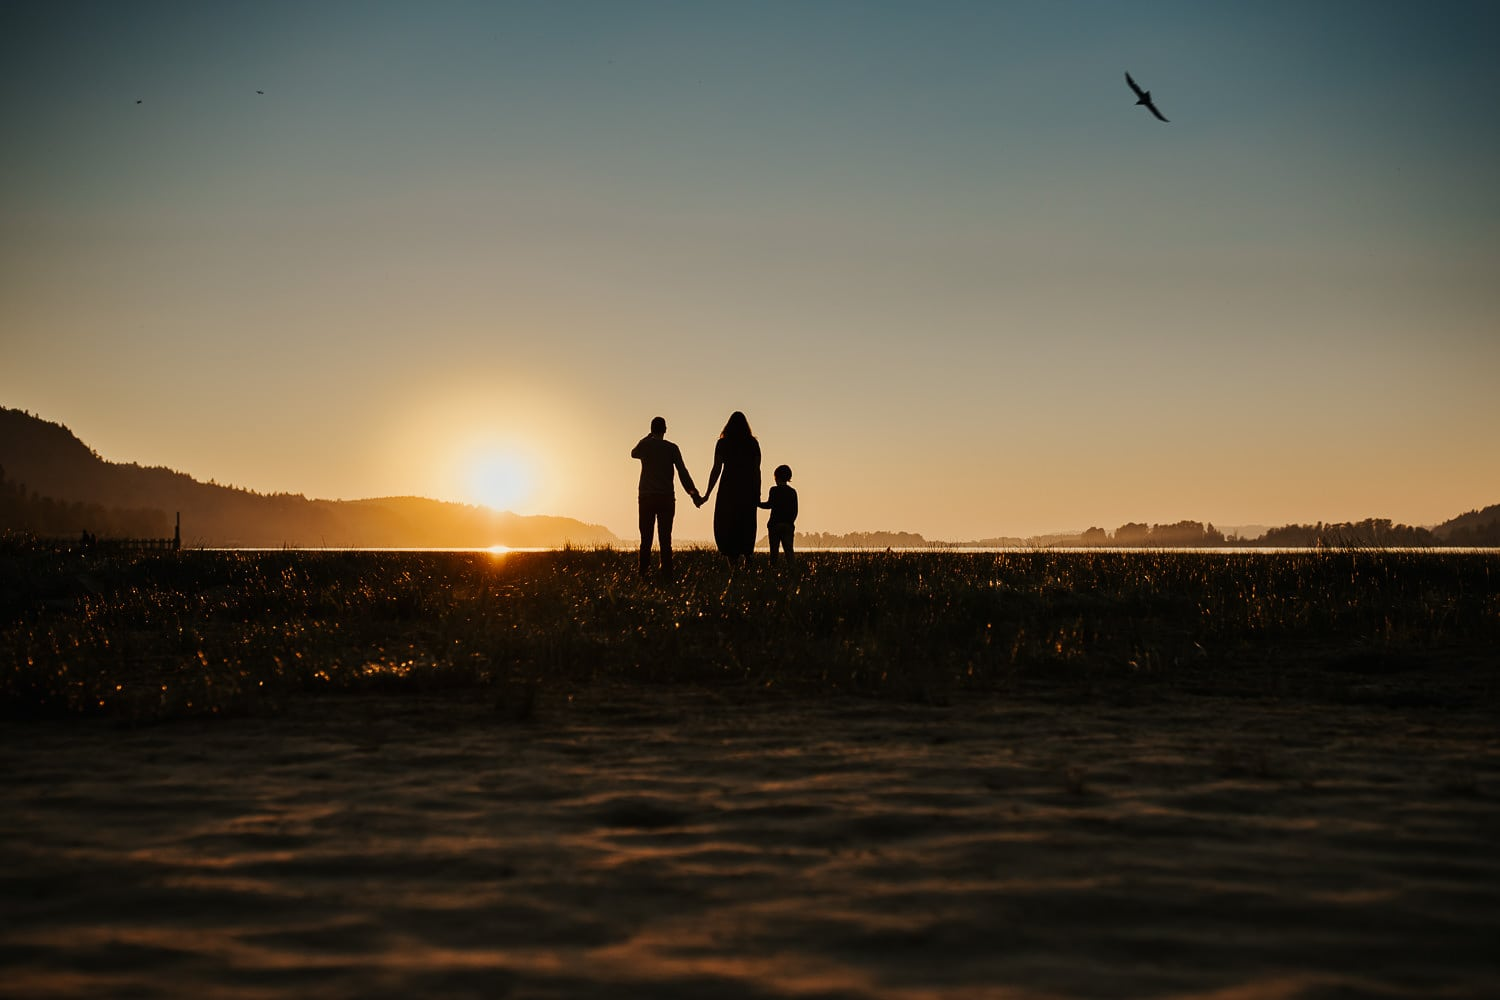 Silhouette of family of three walking towards the sun